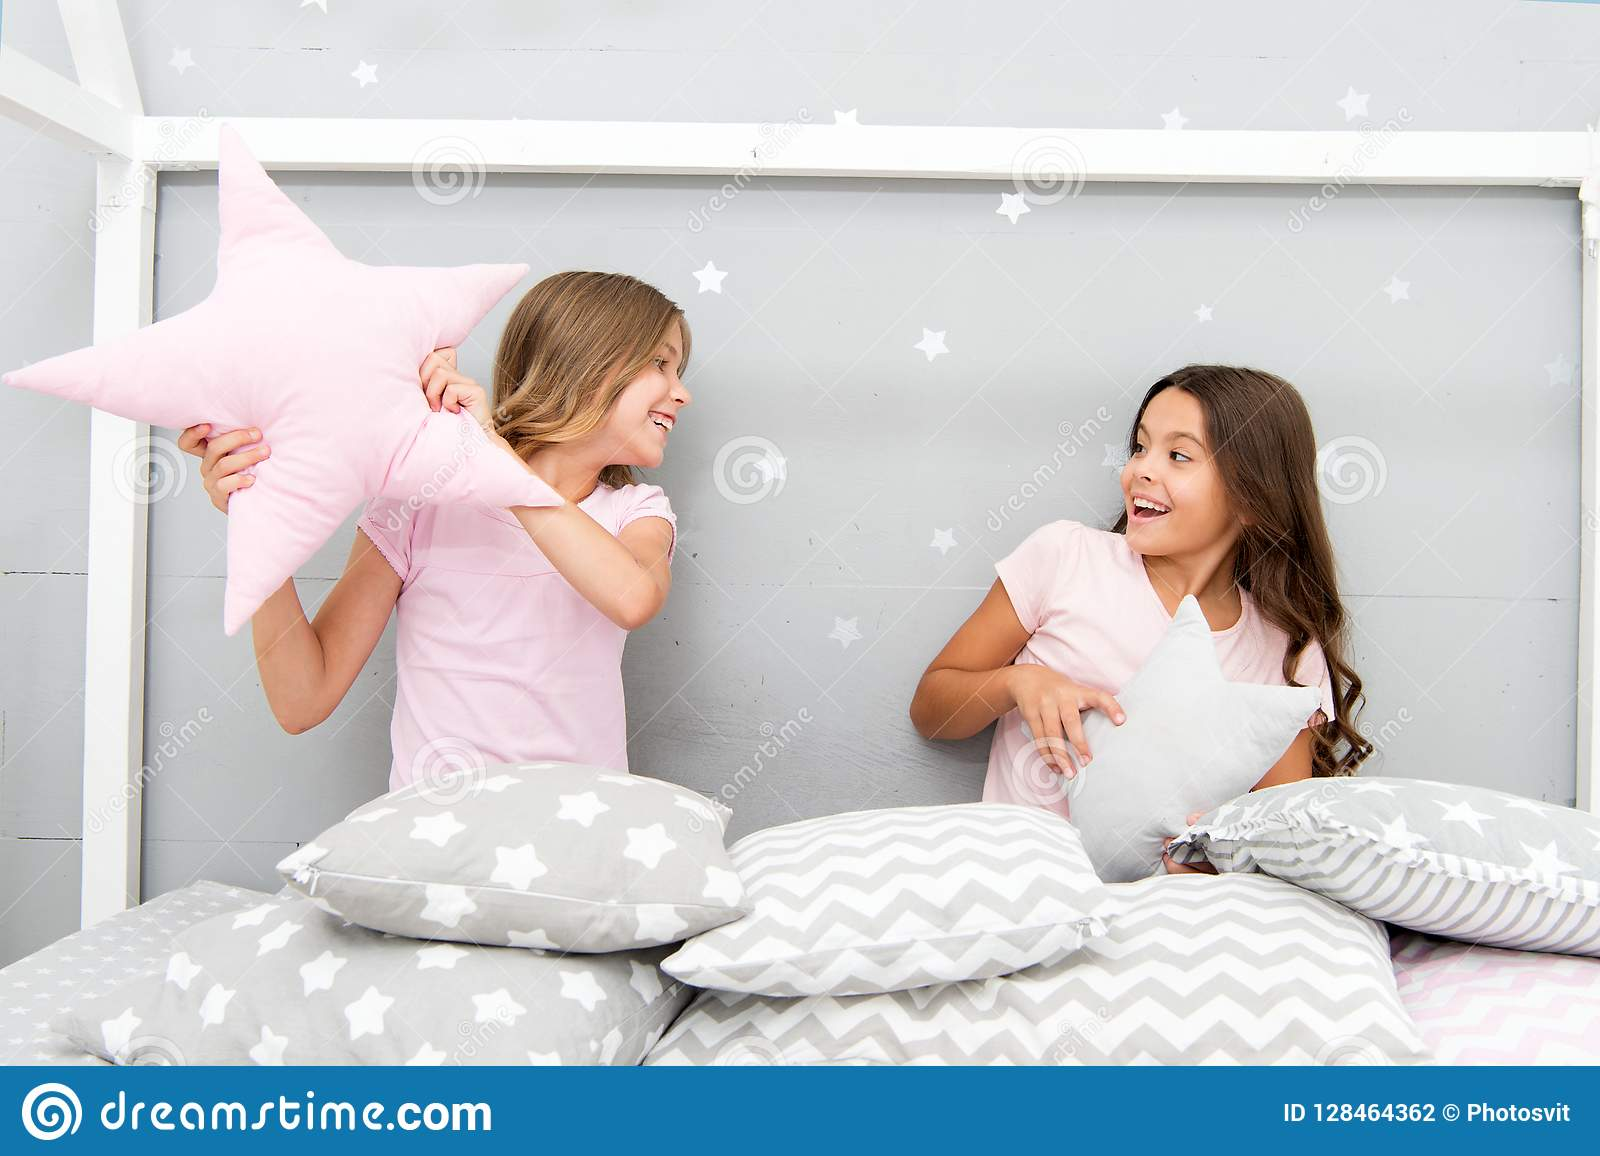 add4b67fa4 Girls sleepover party ideas. Soulmates girls having fun sleepover party. Girls  happy best friends in pajamas with pillows sleepover party.